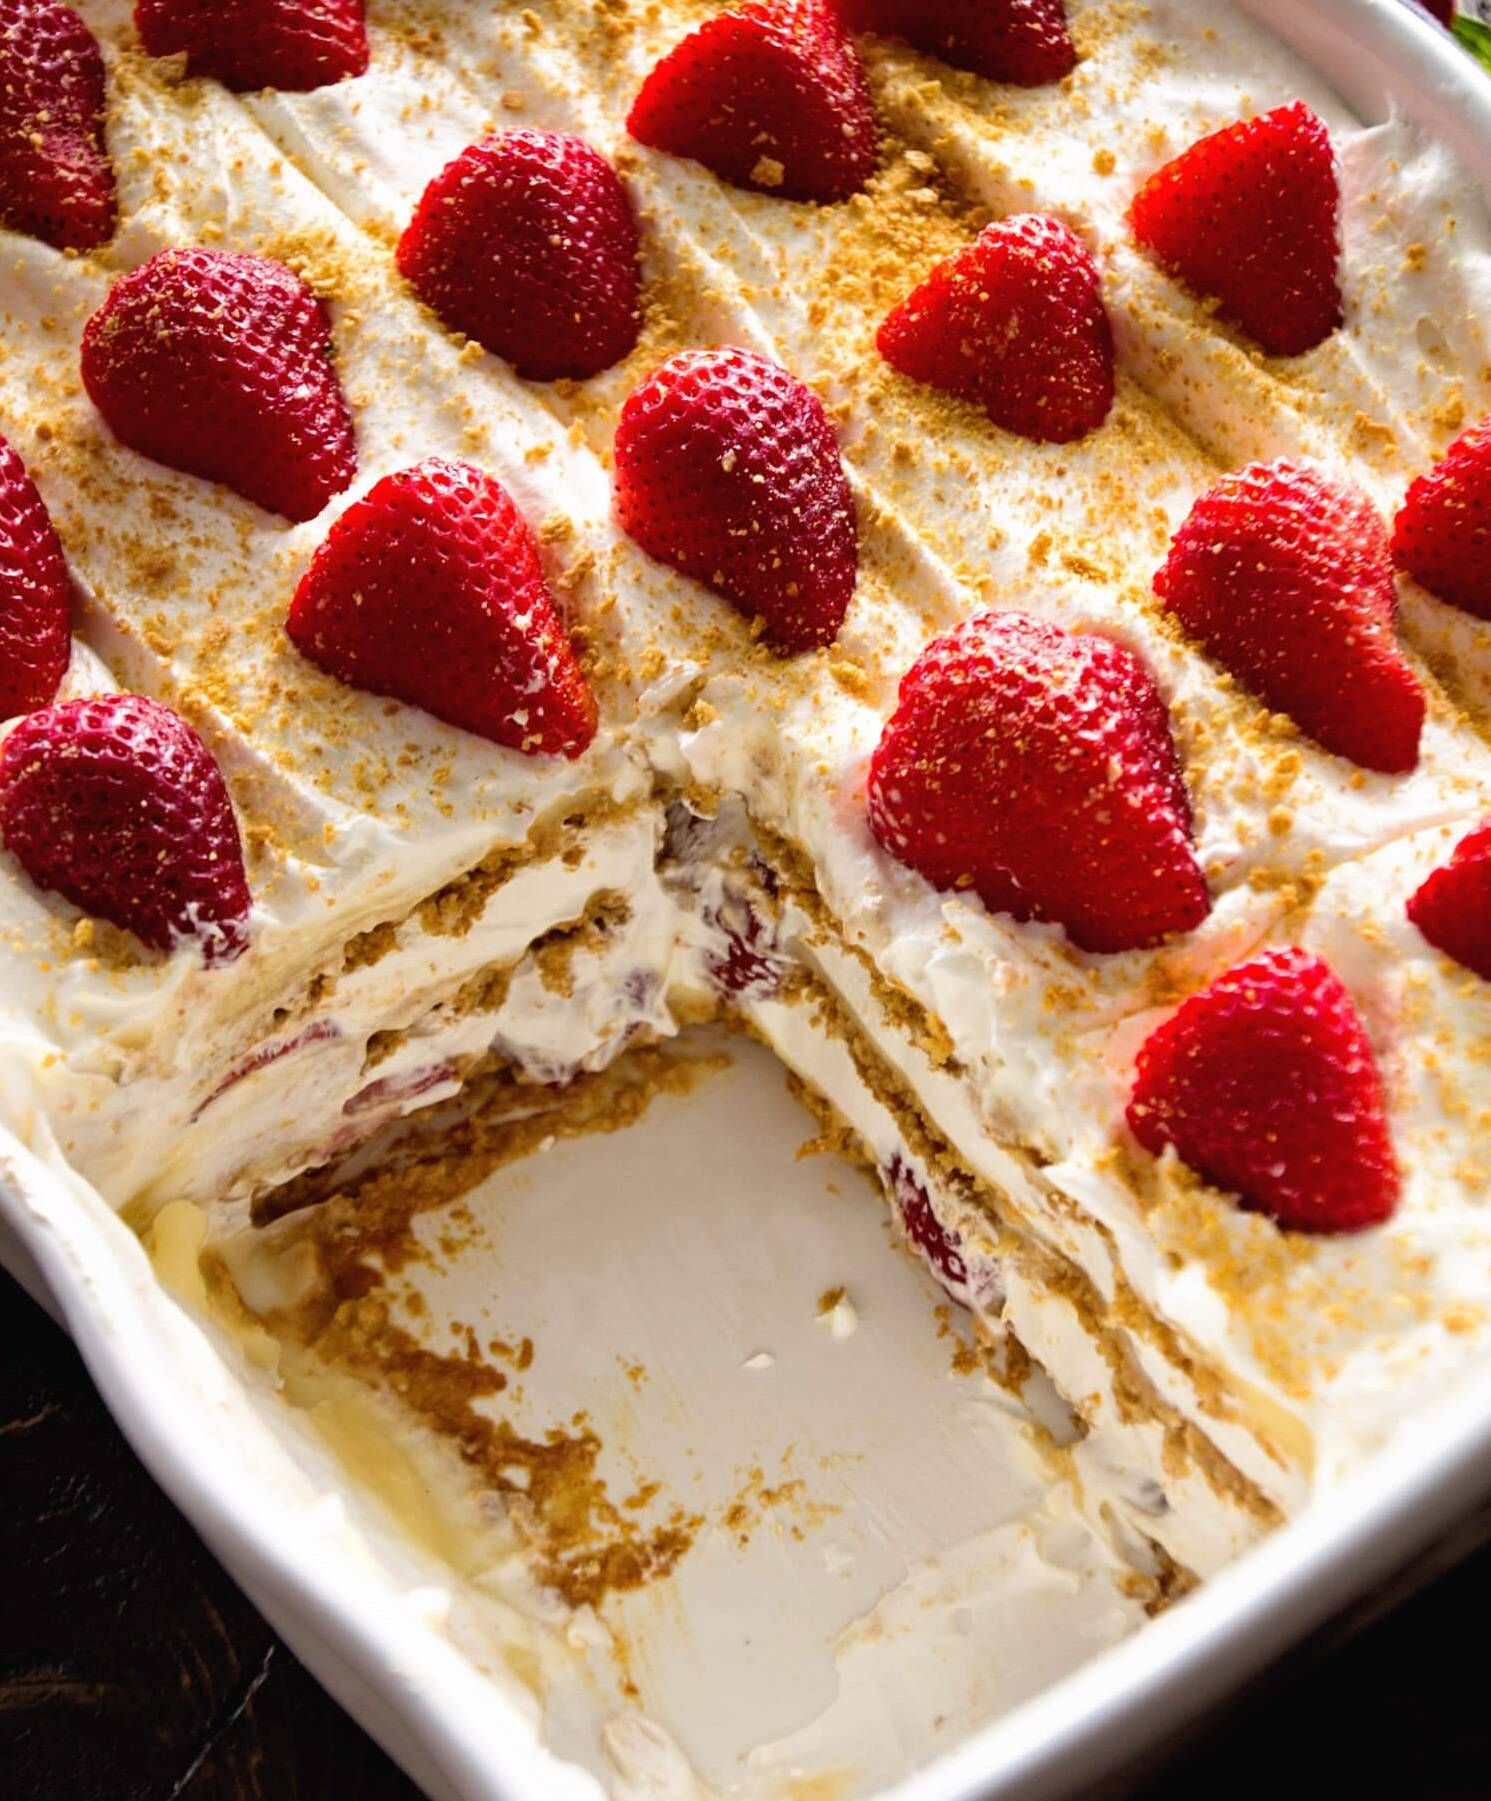 No Bake Graham Cracker Cheesycake